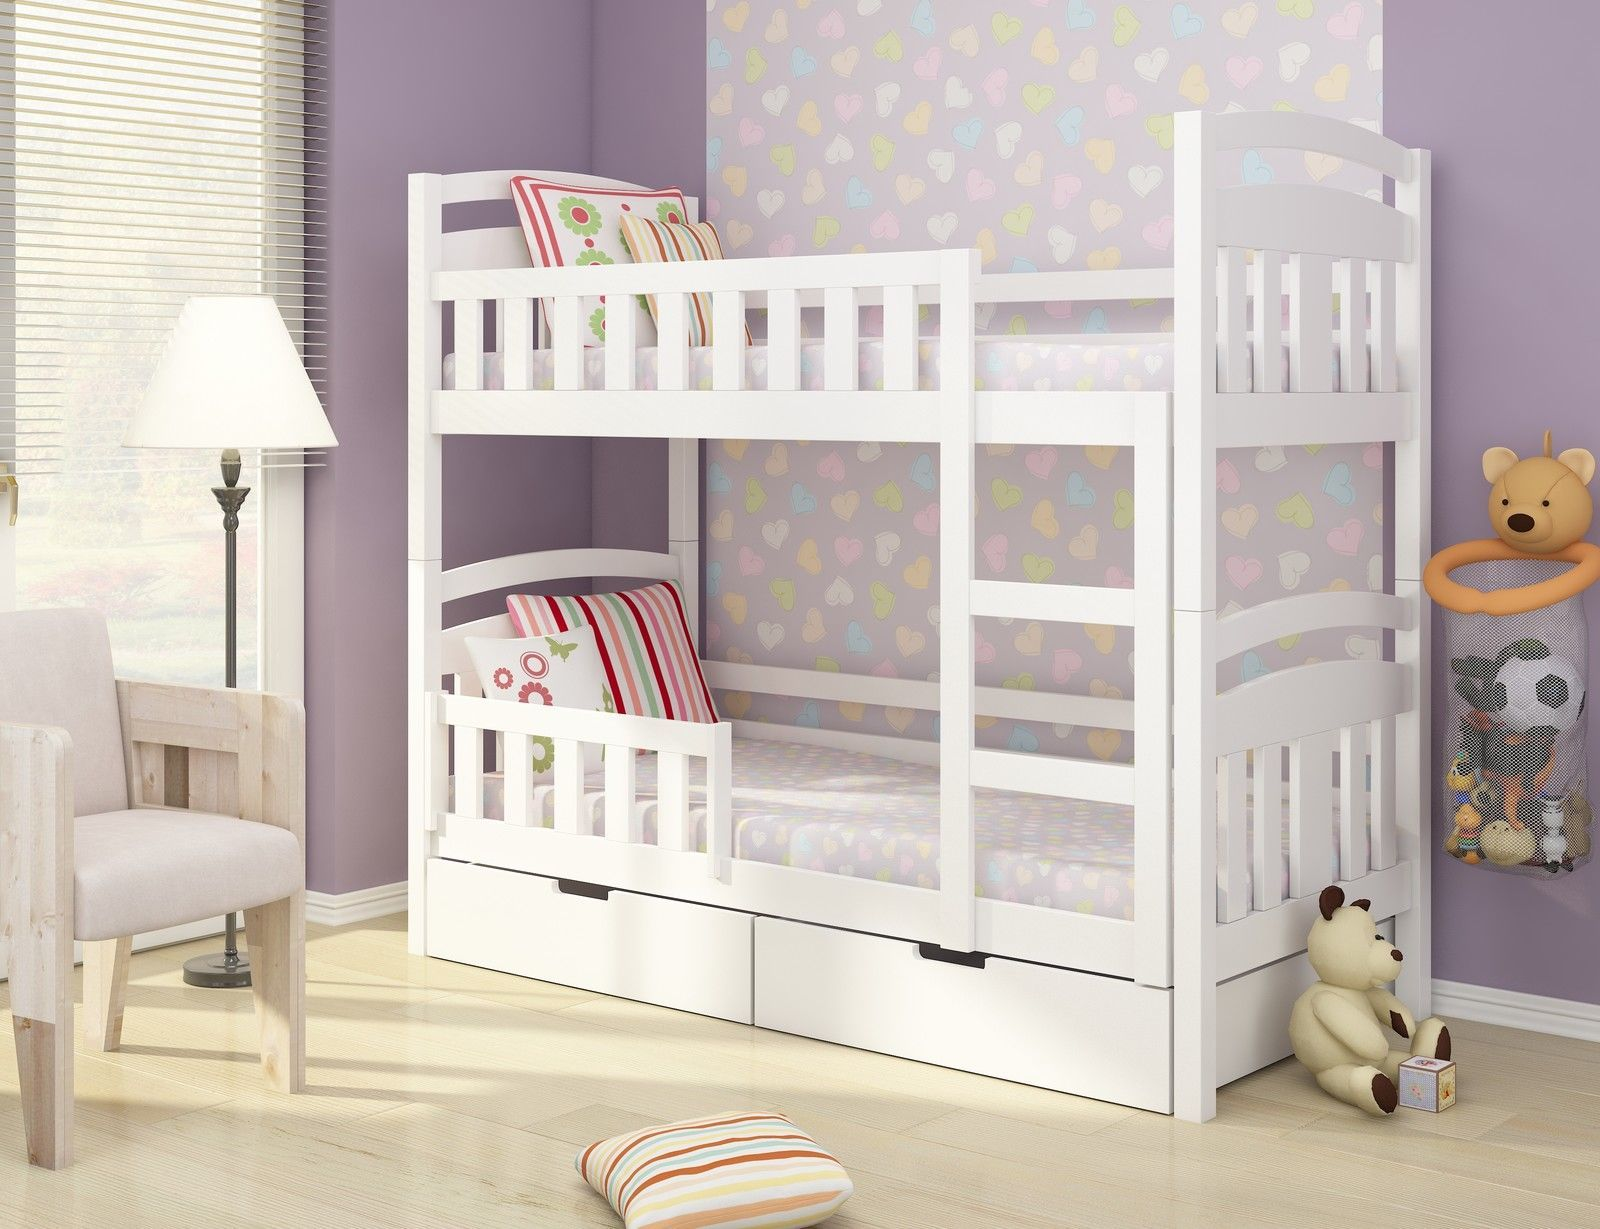 Lilly Brand White Pine Blue Wooden Bunk Bed With Mattresses